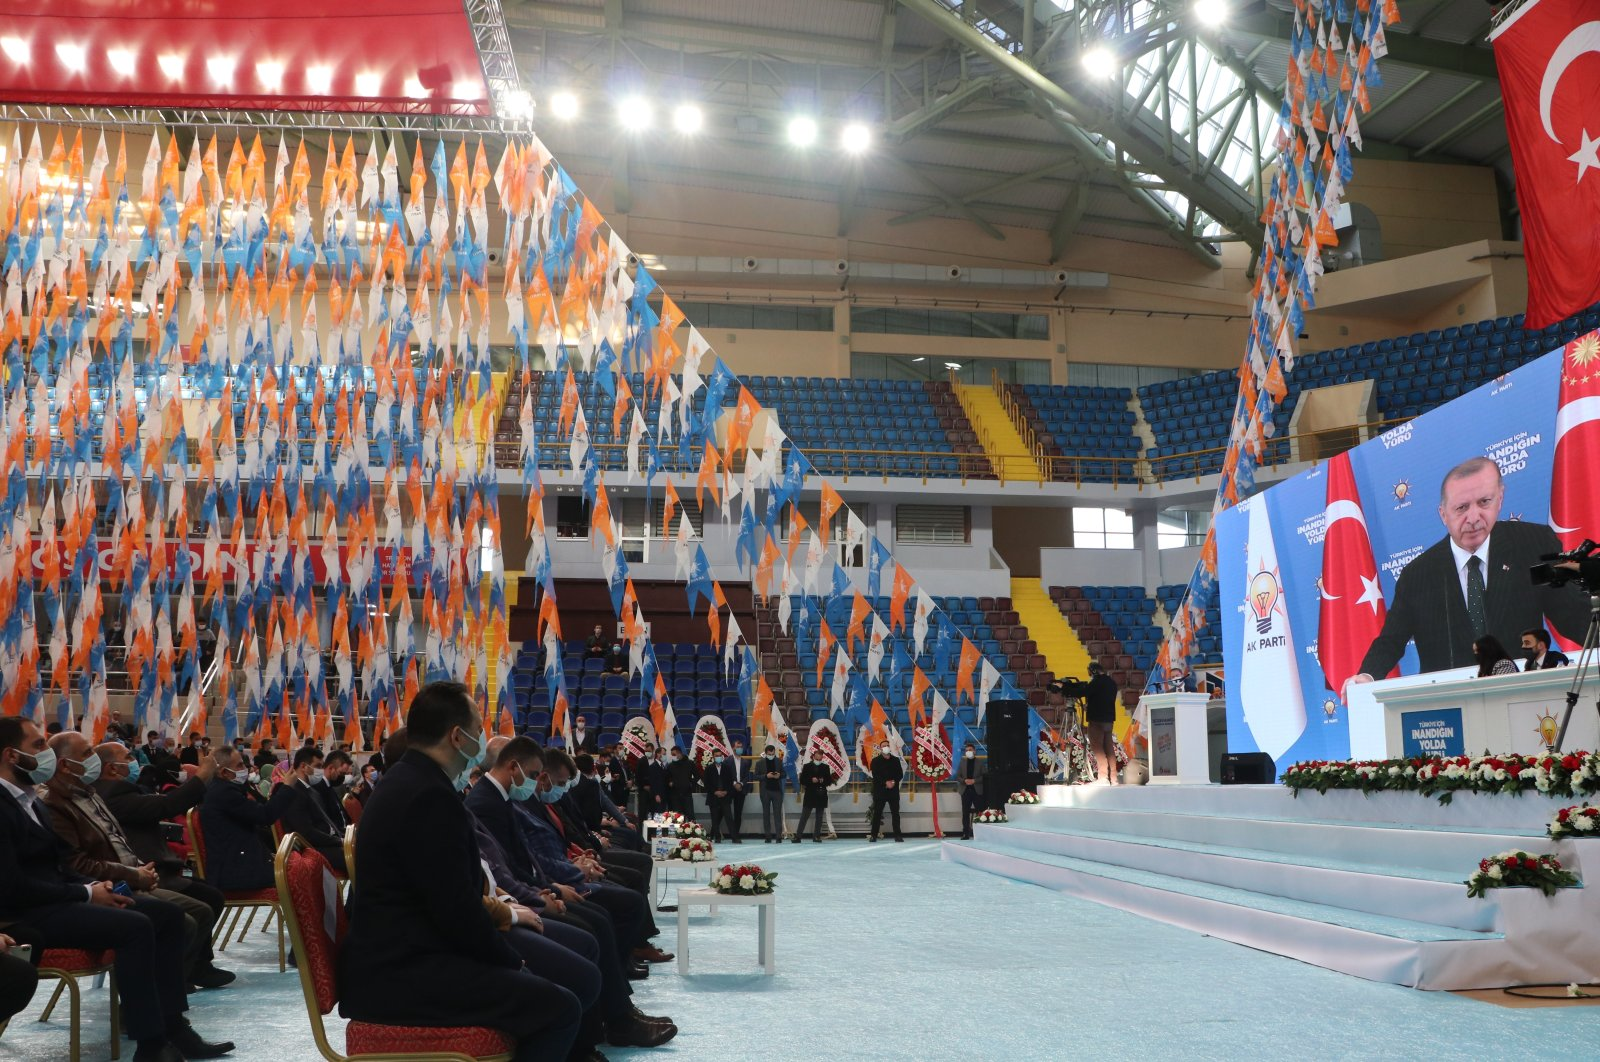 The sixth congress of the ruling Justice and Development Party's Trabzon youth branch convenes in Trabzon, Turkey, Feb.12, 2021. (AA Photo)